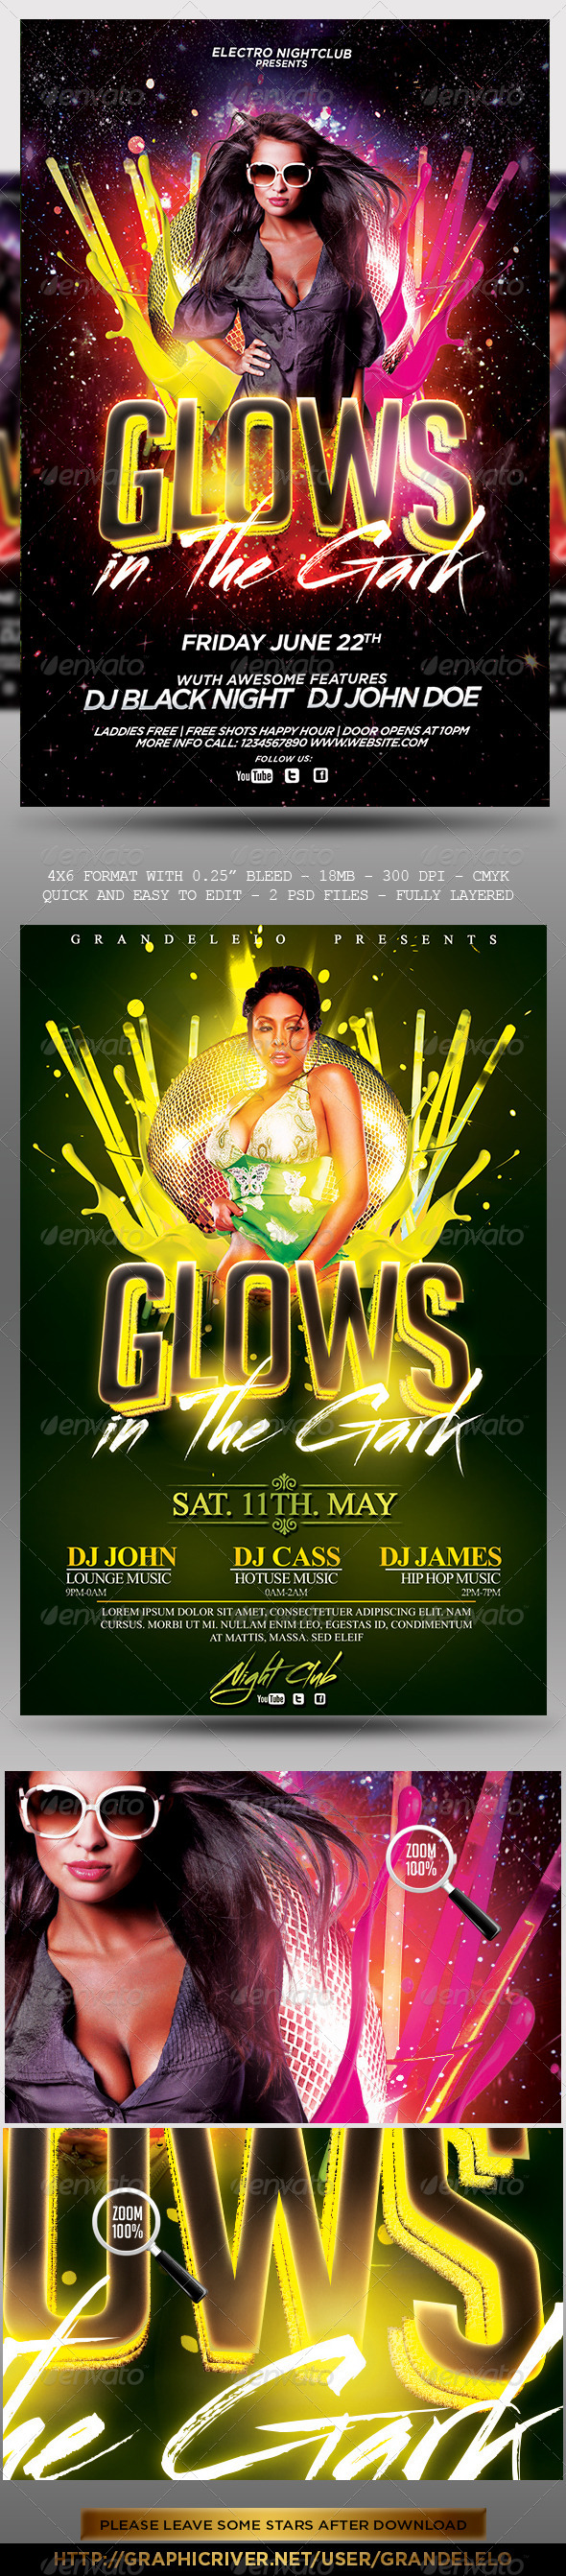 Glows in the Dark Party Flyer